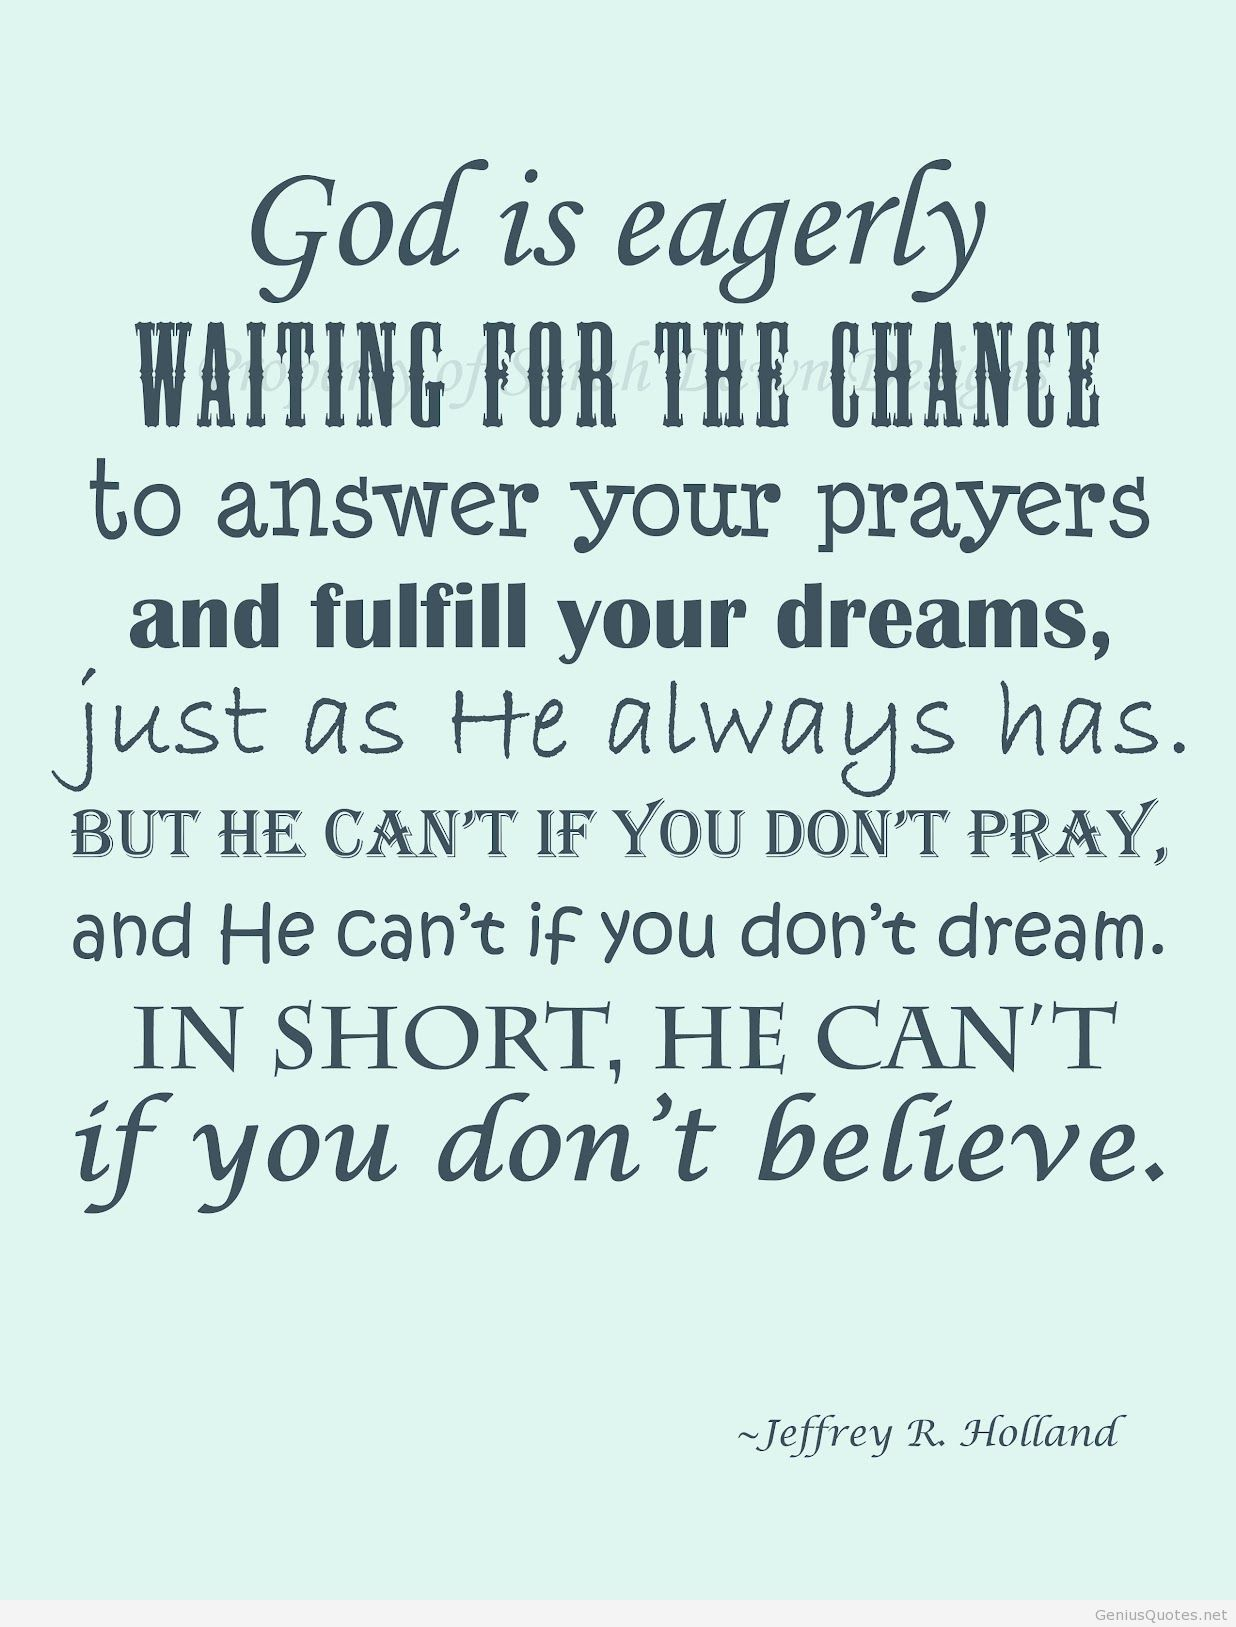 So lucky I was brought up to believe and pray | LDS | Pinterest ...